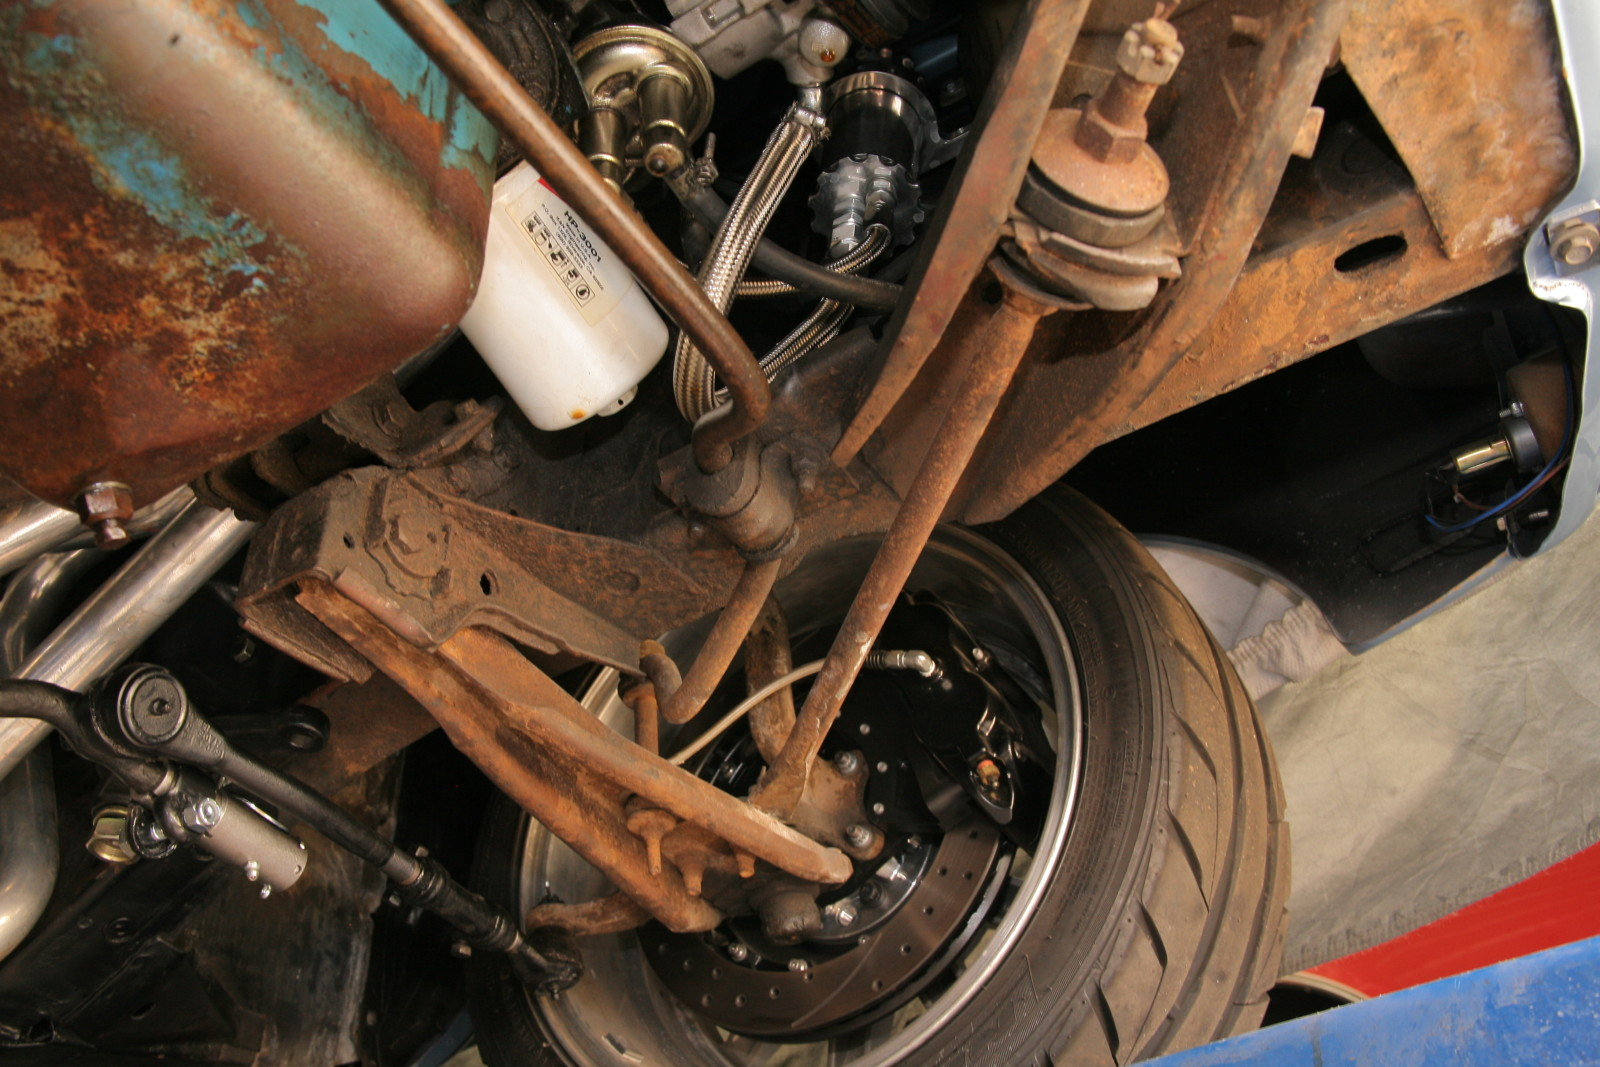 Surefooted Steed: Adding a RideTech Coilover Suspension